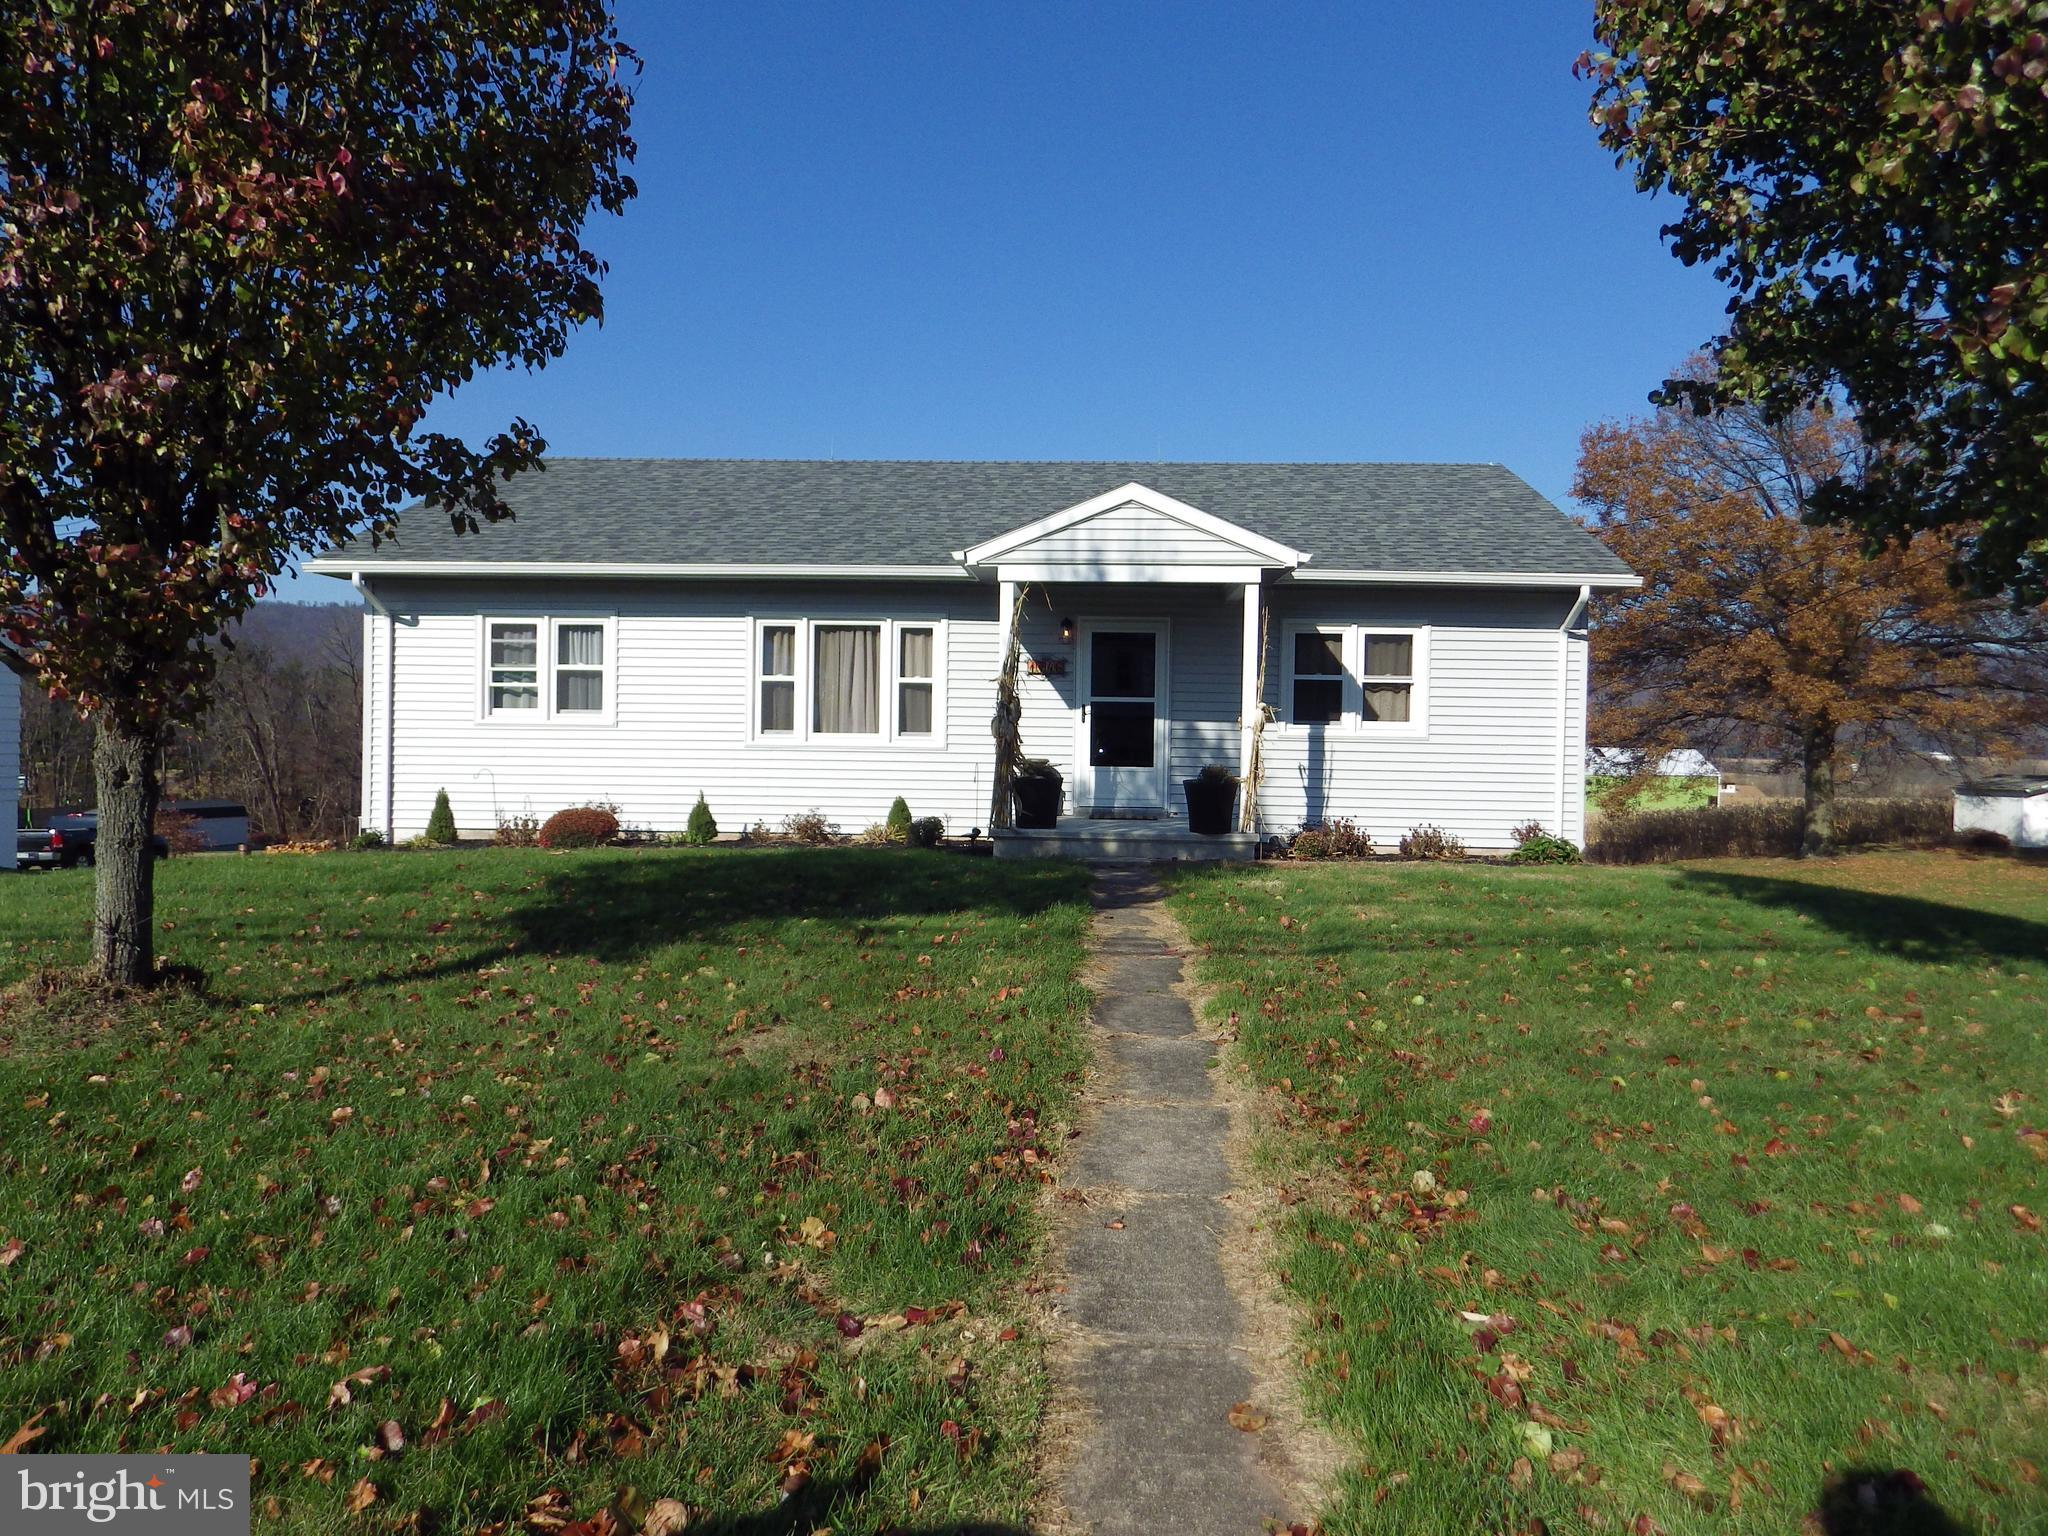 1746 W MAIN STREET, VALLEY VIEW, PA 17983